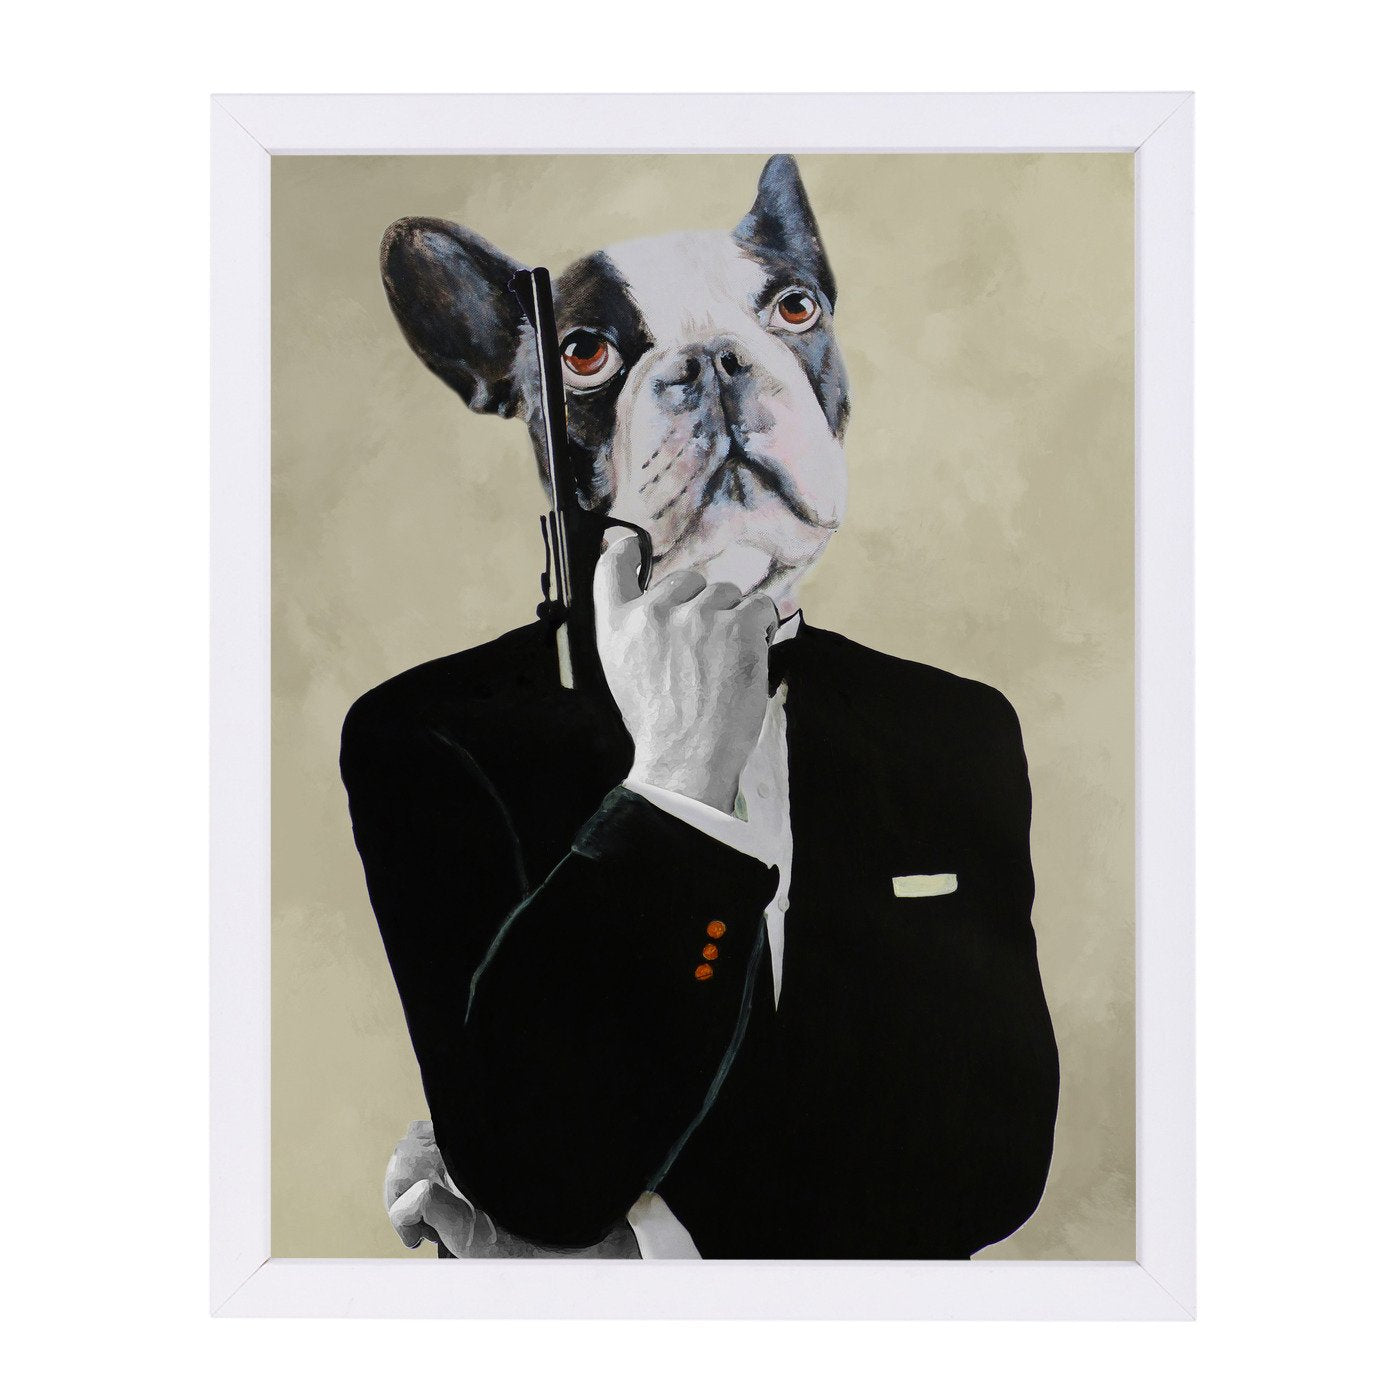 James Bond Bulldog By Coco De Paris - Framed Print - Americanflat